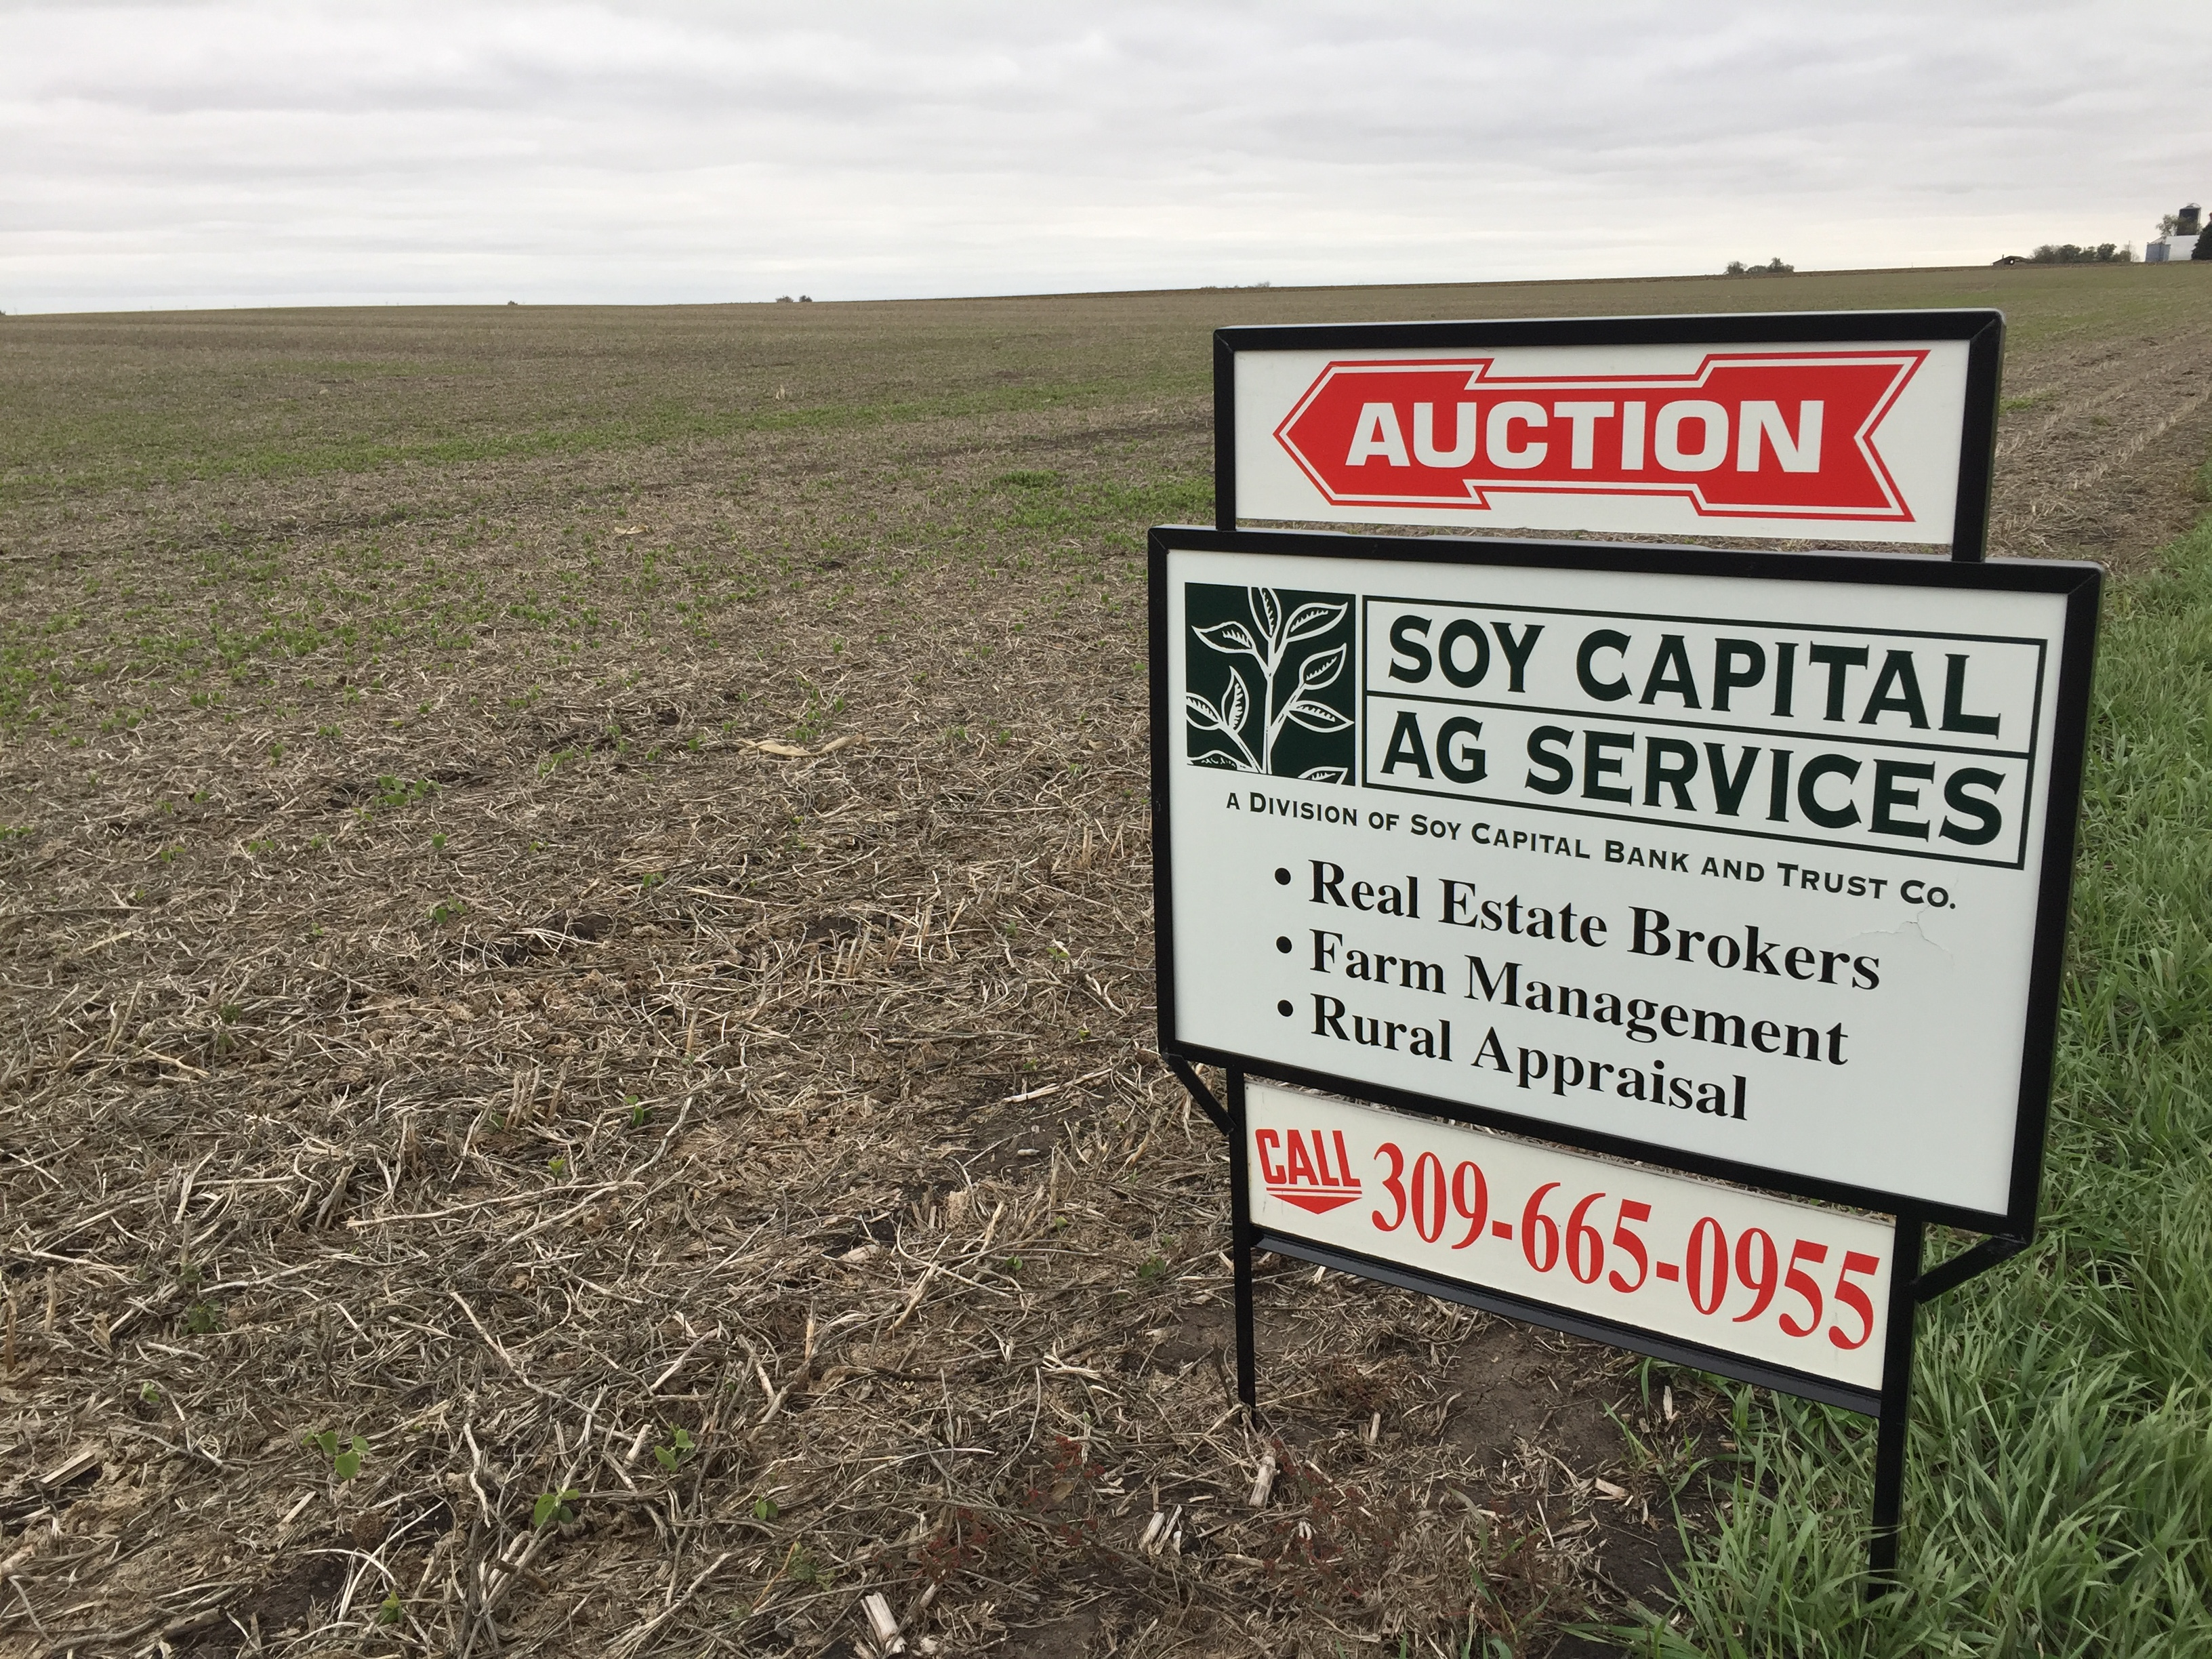 Picture of for sale sign on Giannini Farm